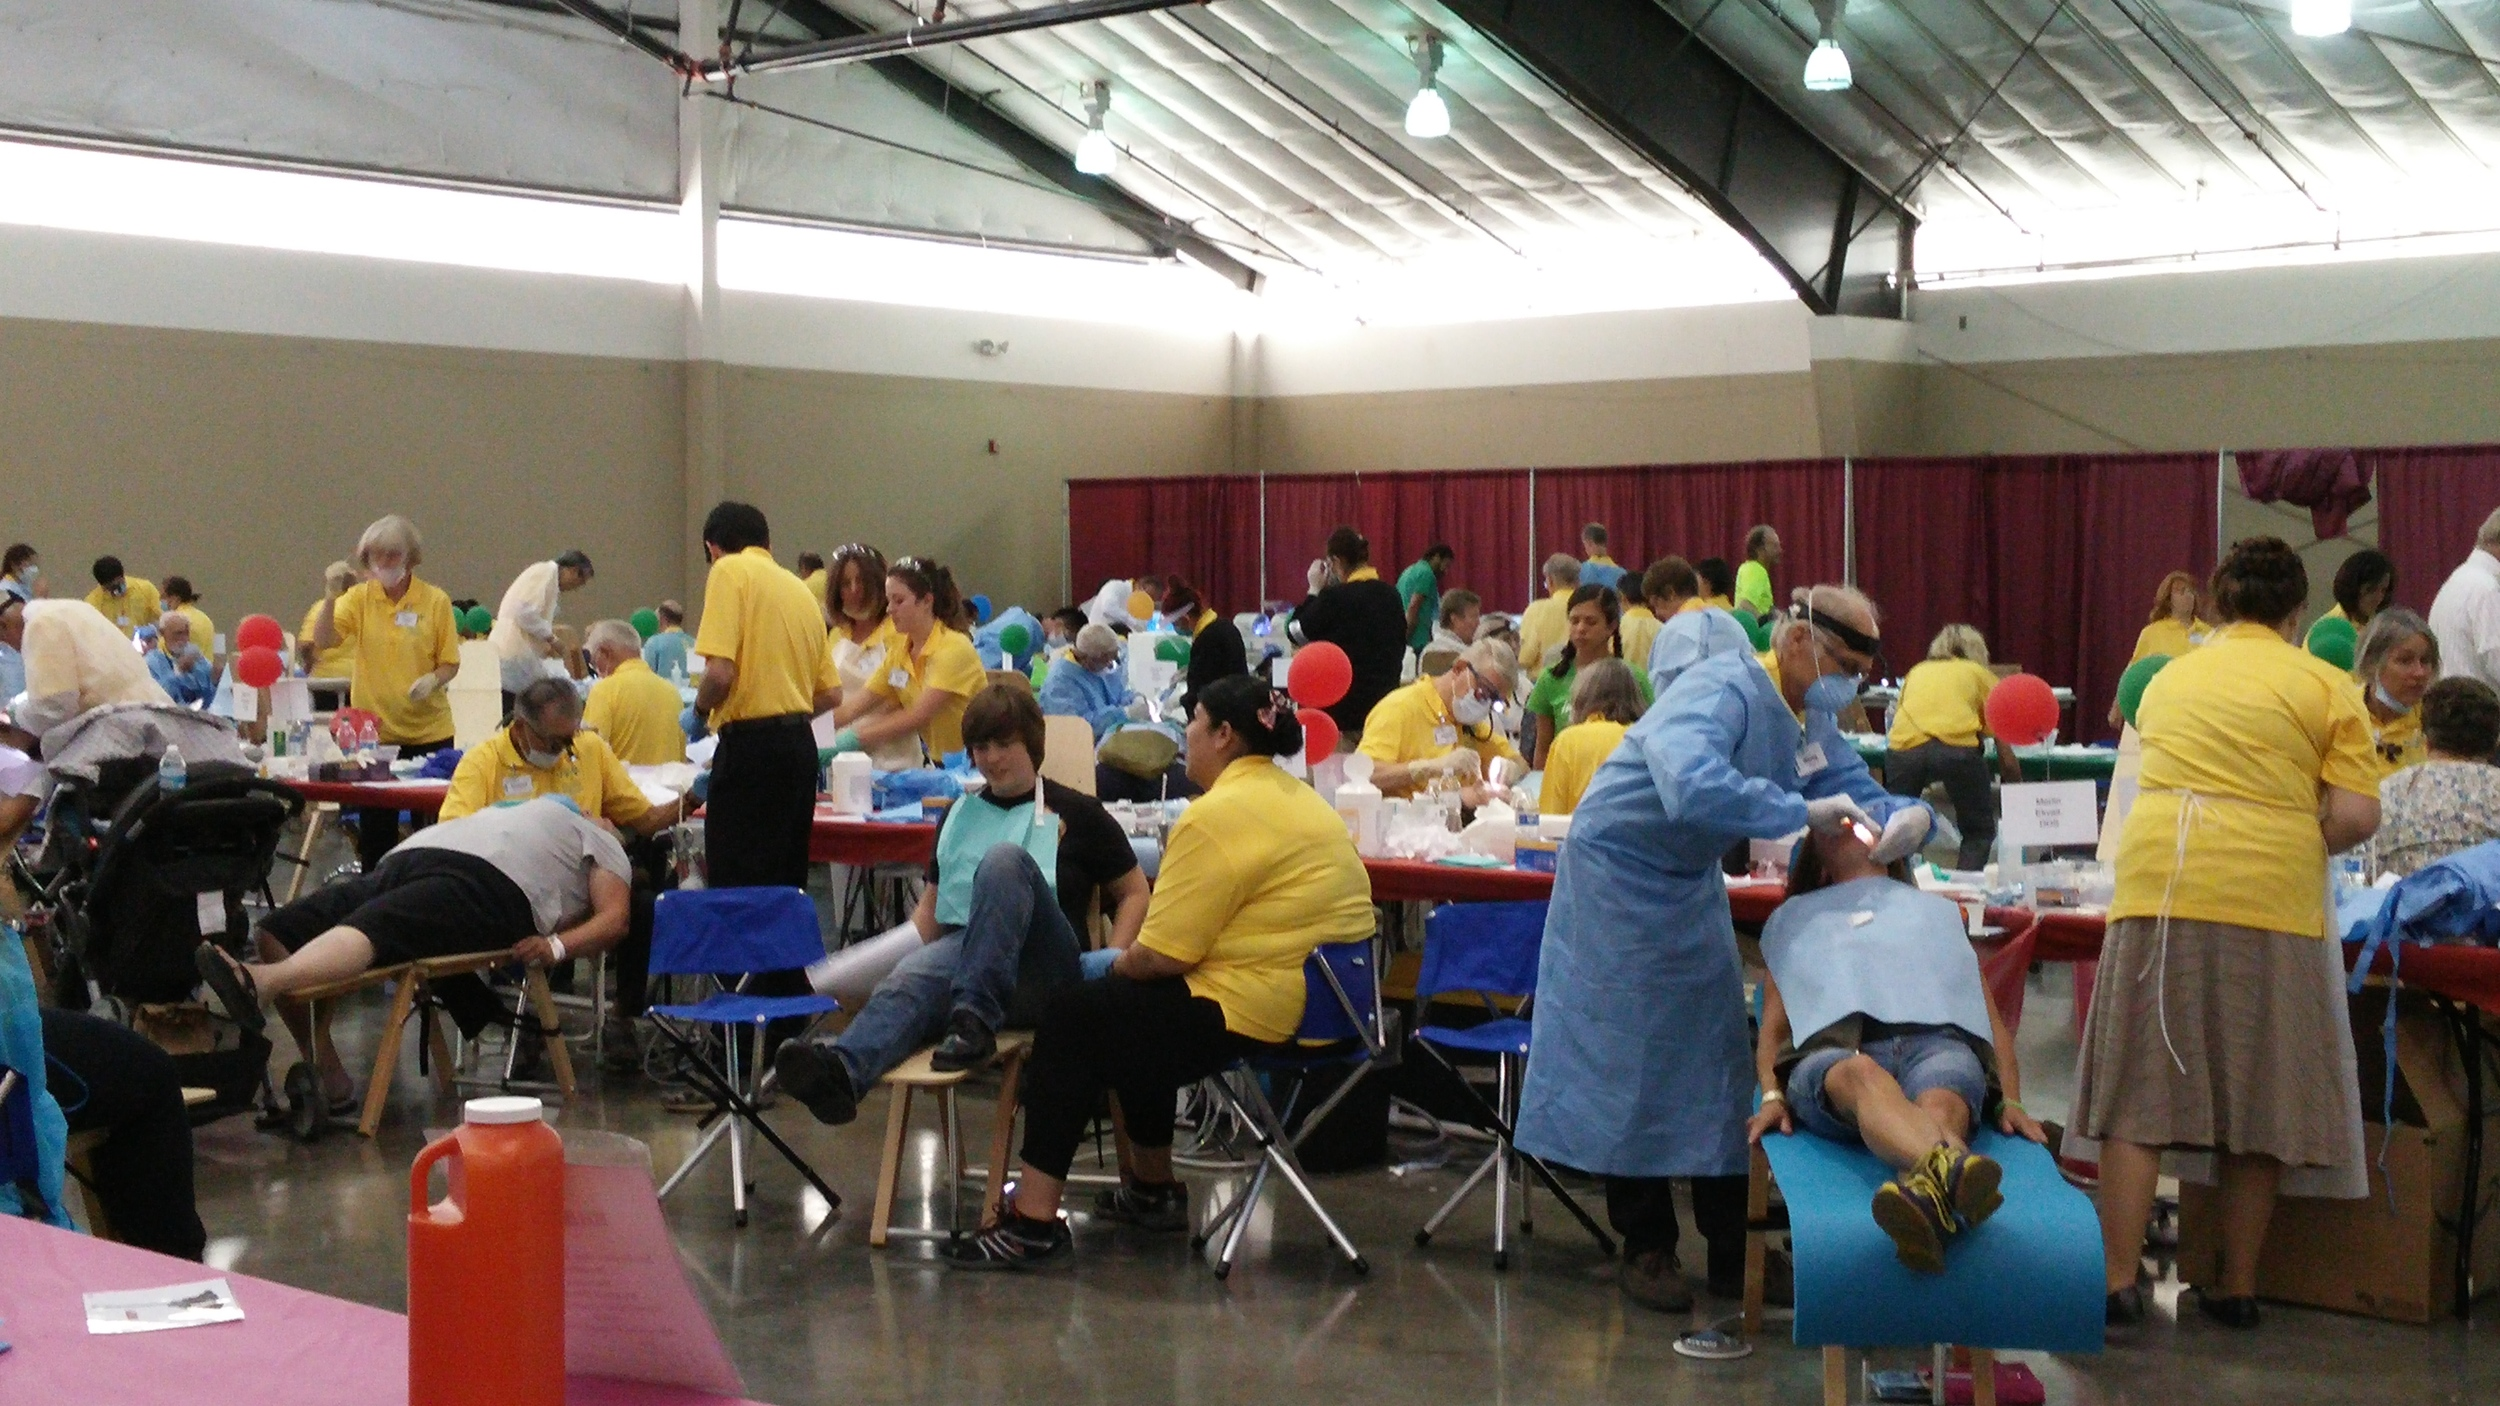 Dental clinic at Pathways to Health 2015.